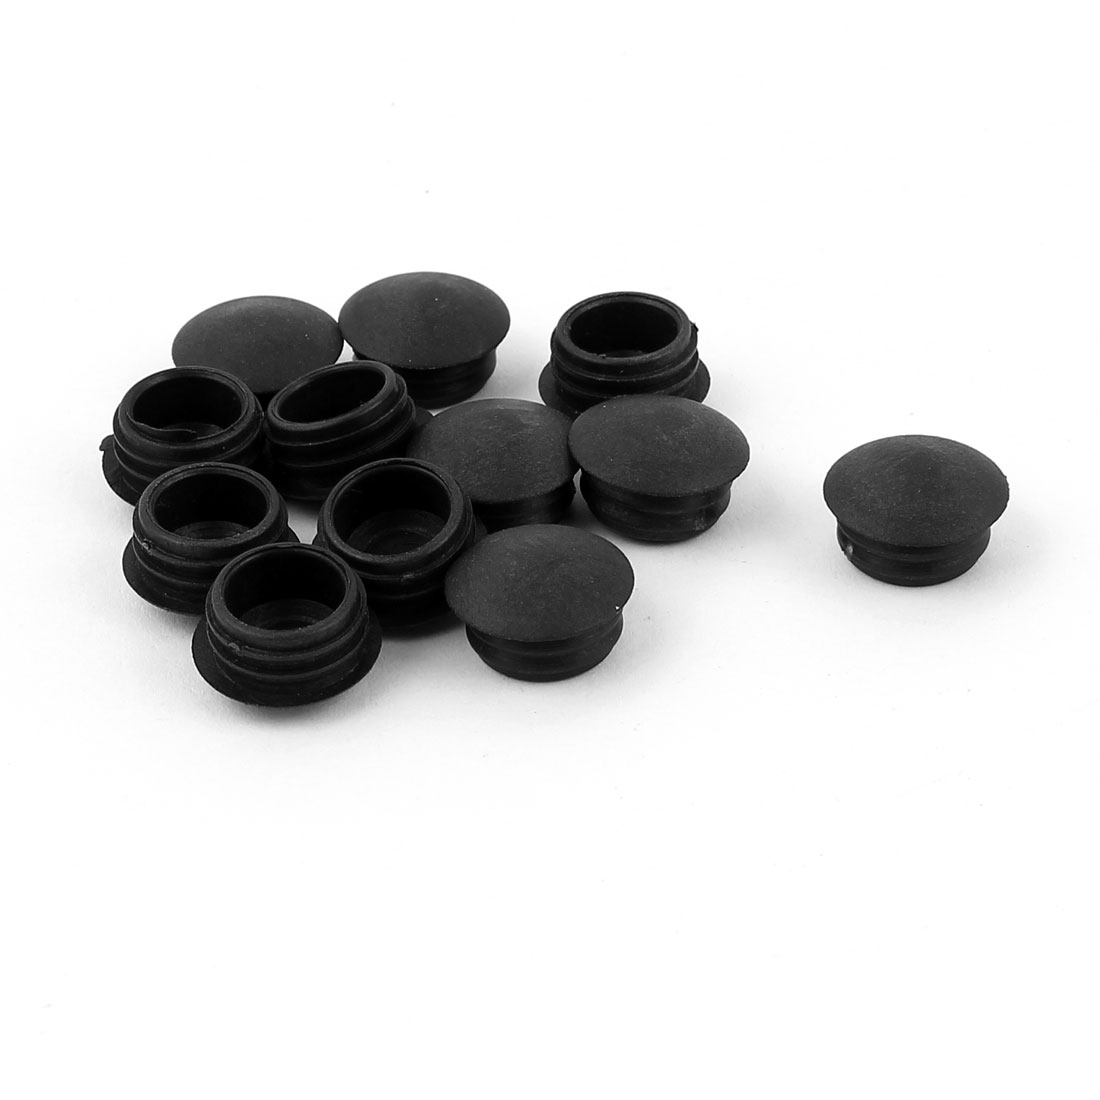 Blanking End Caps 13mm Dia Plastic Round Tubing Tube Inserts 12 Pcs